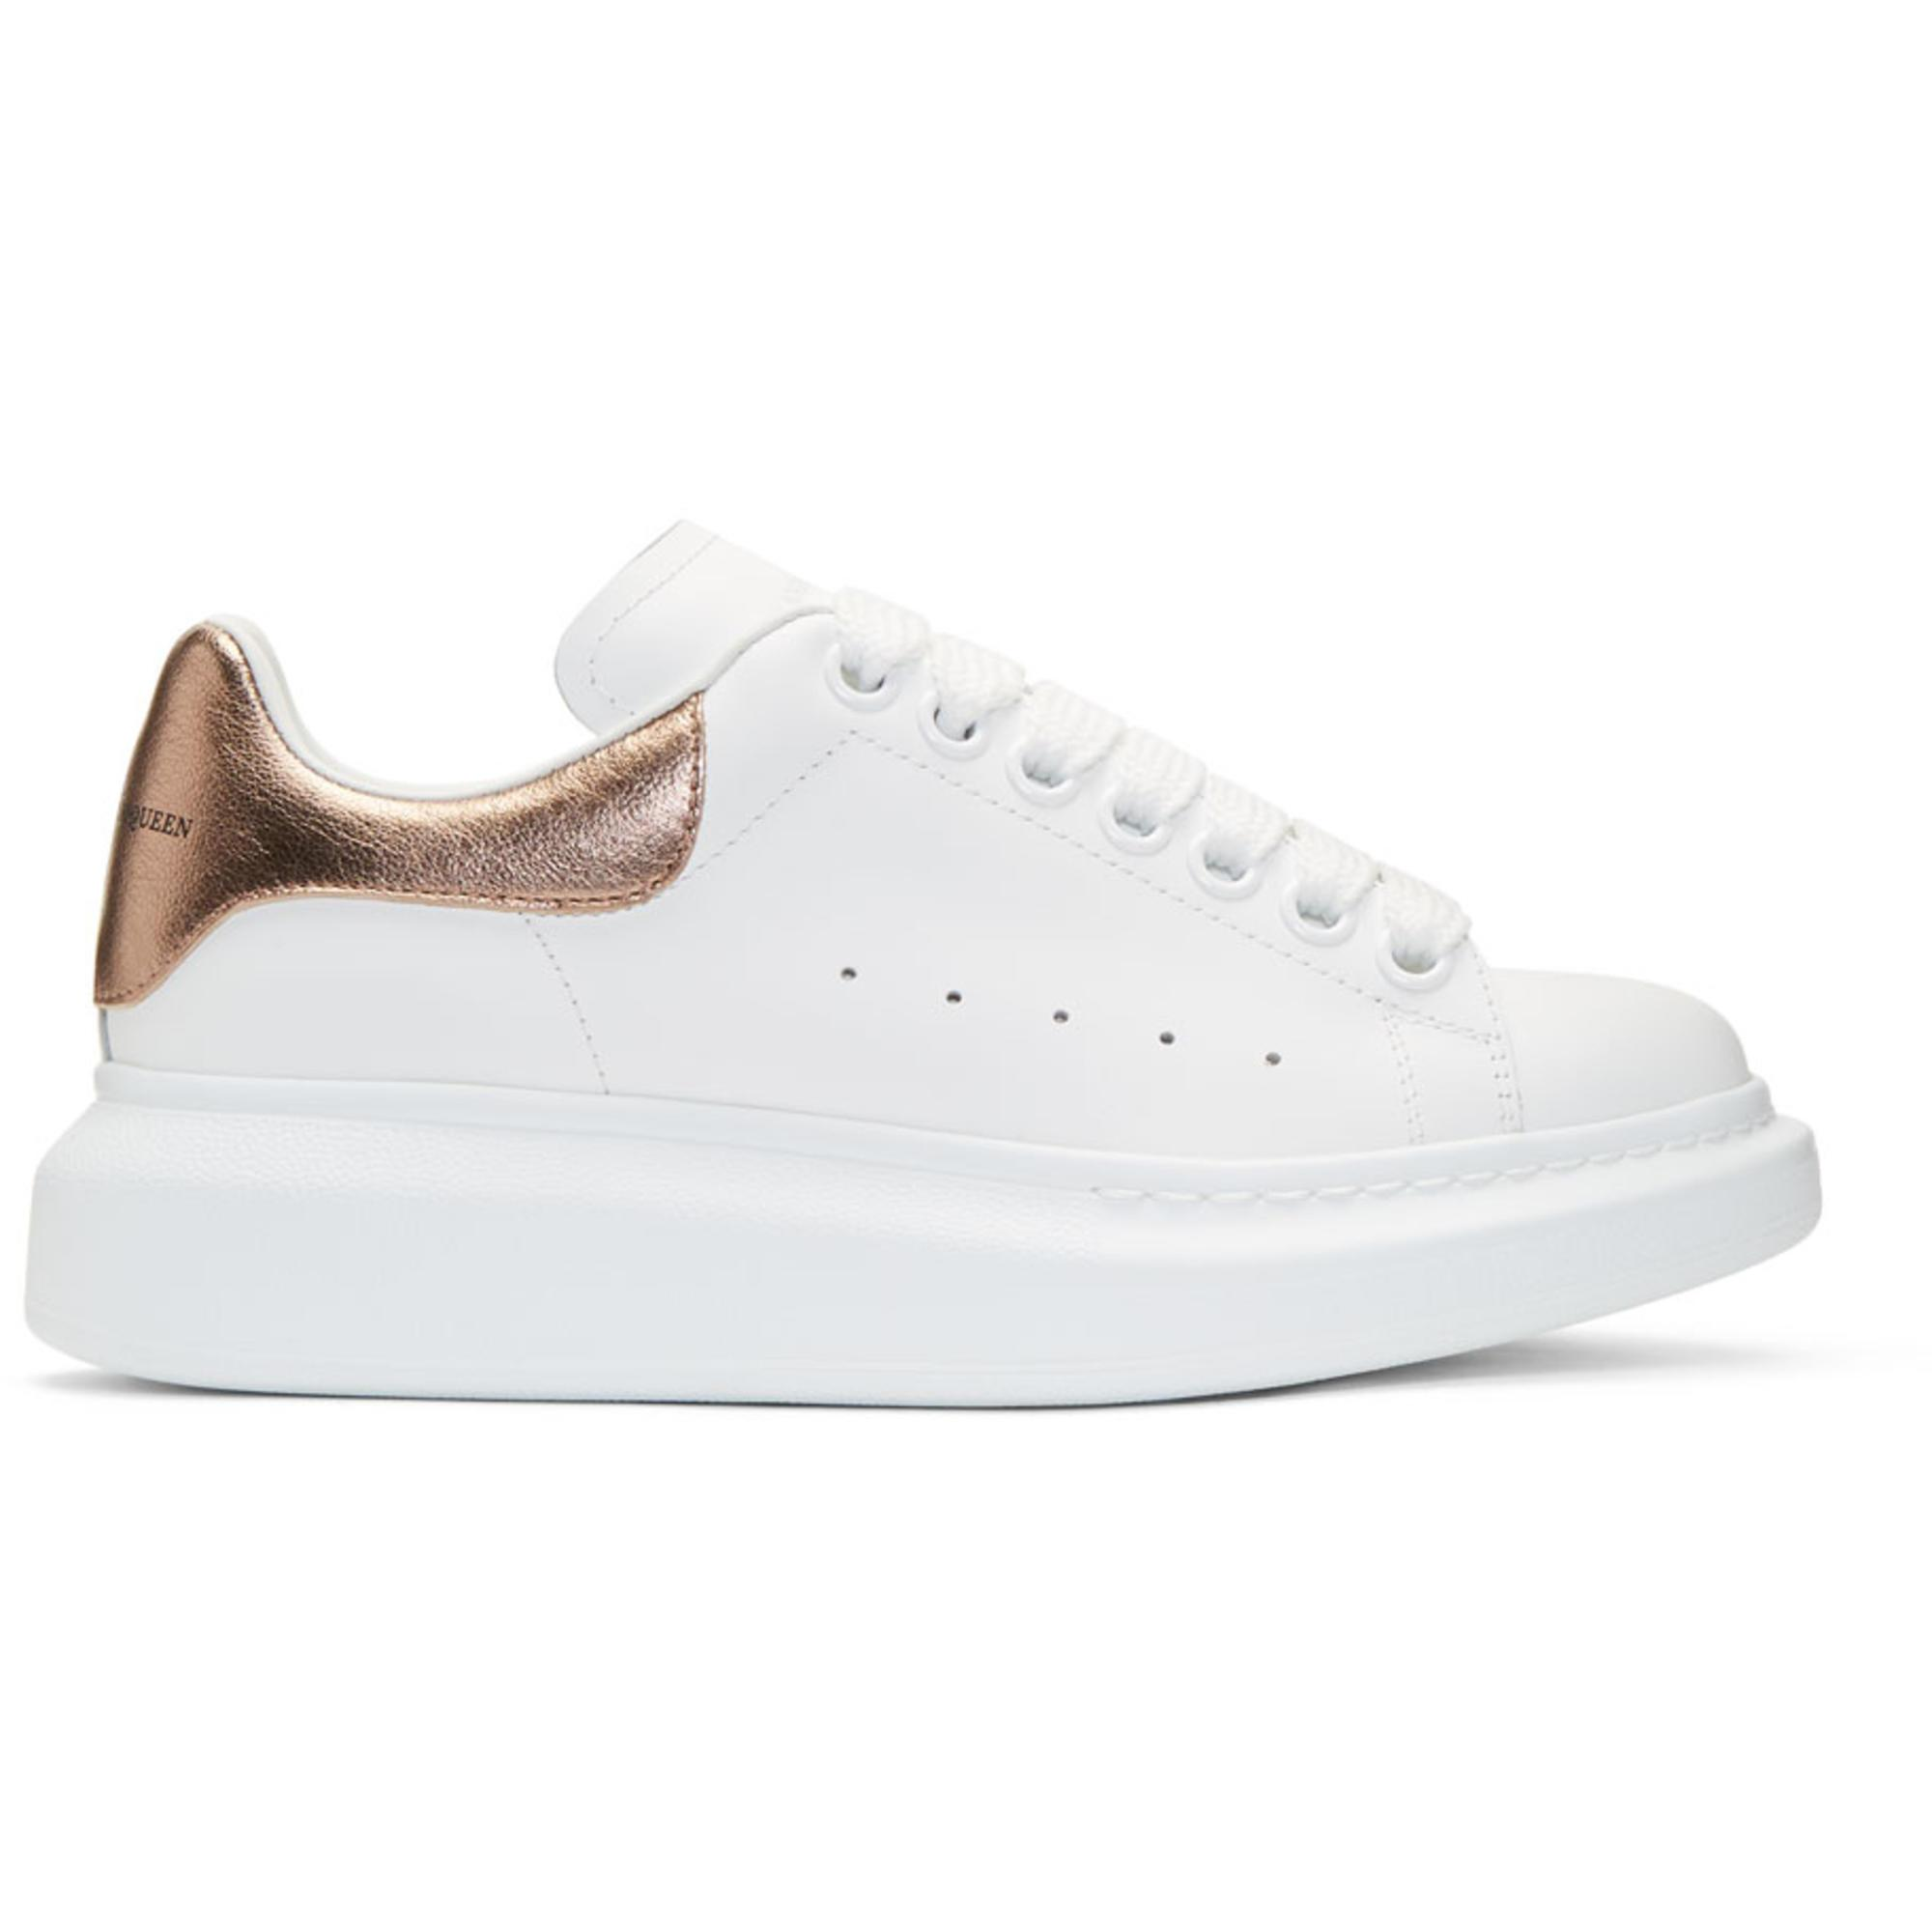 White and Rose Gold Oversized Sneakers Alexander McQueen eF057H2tu